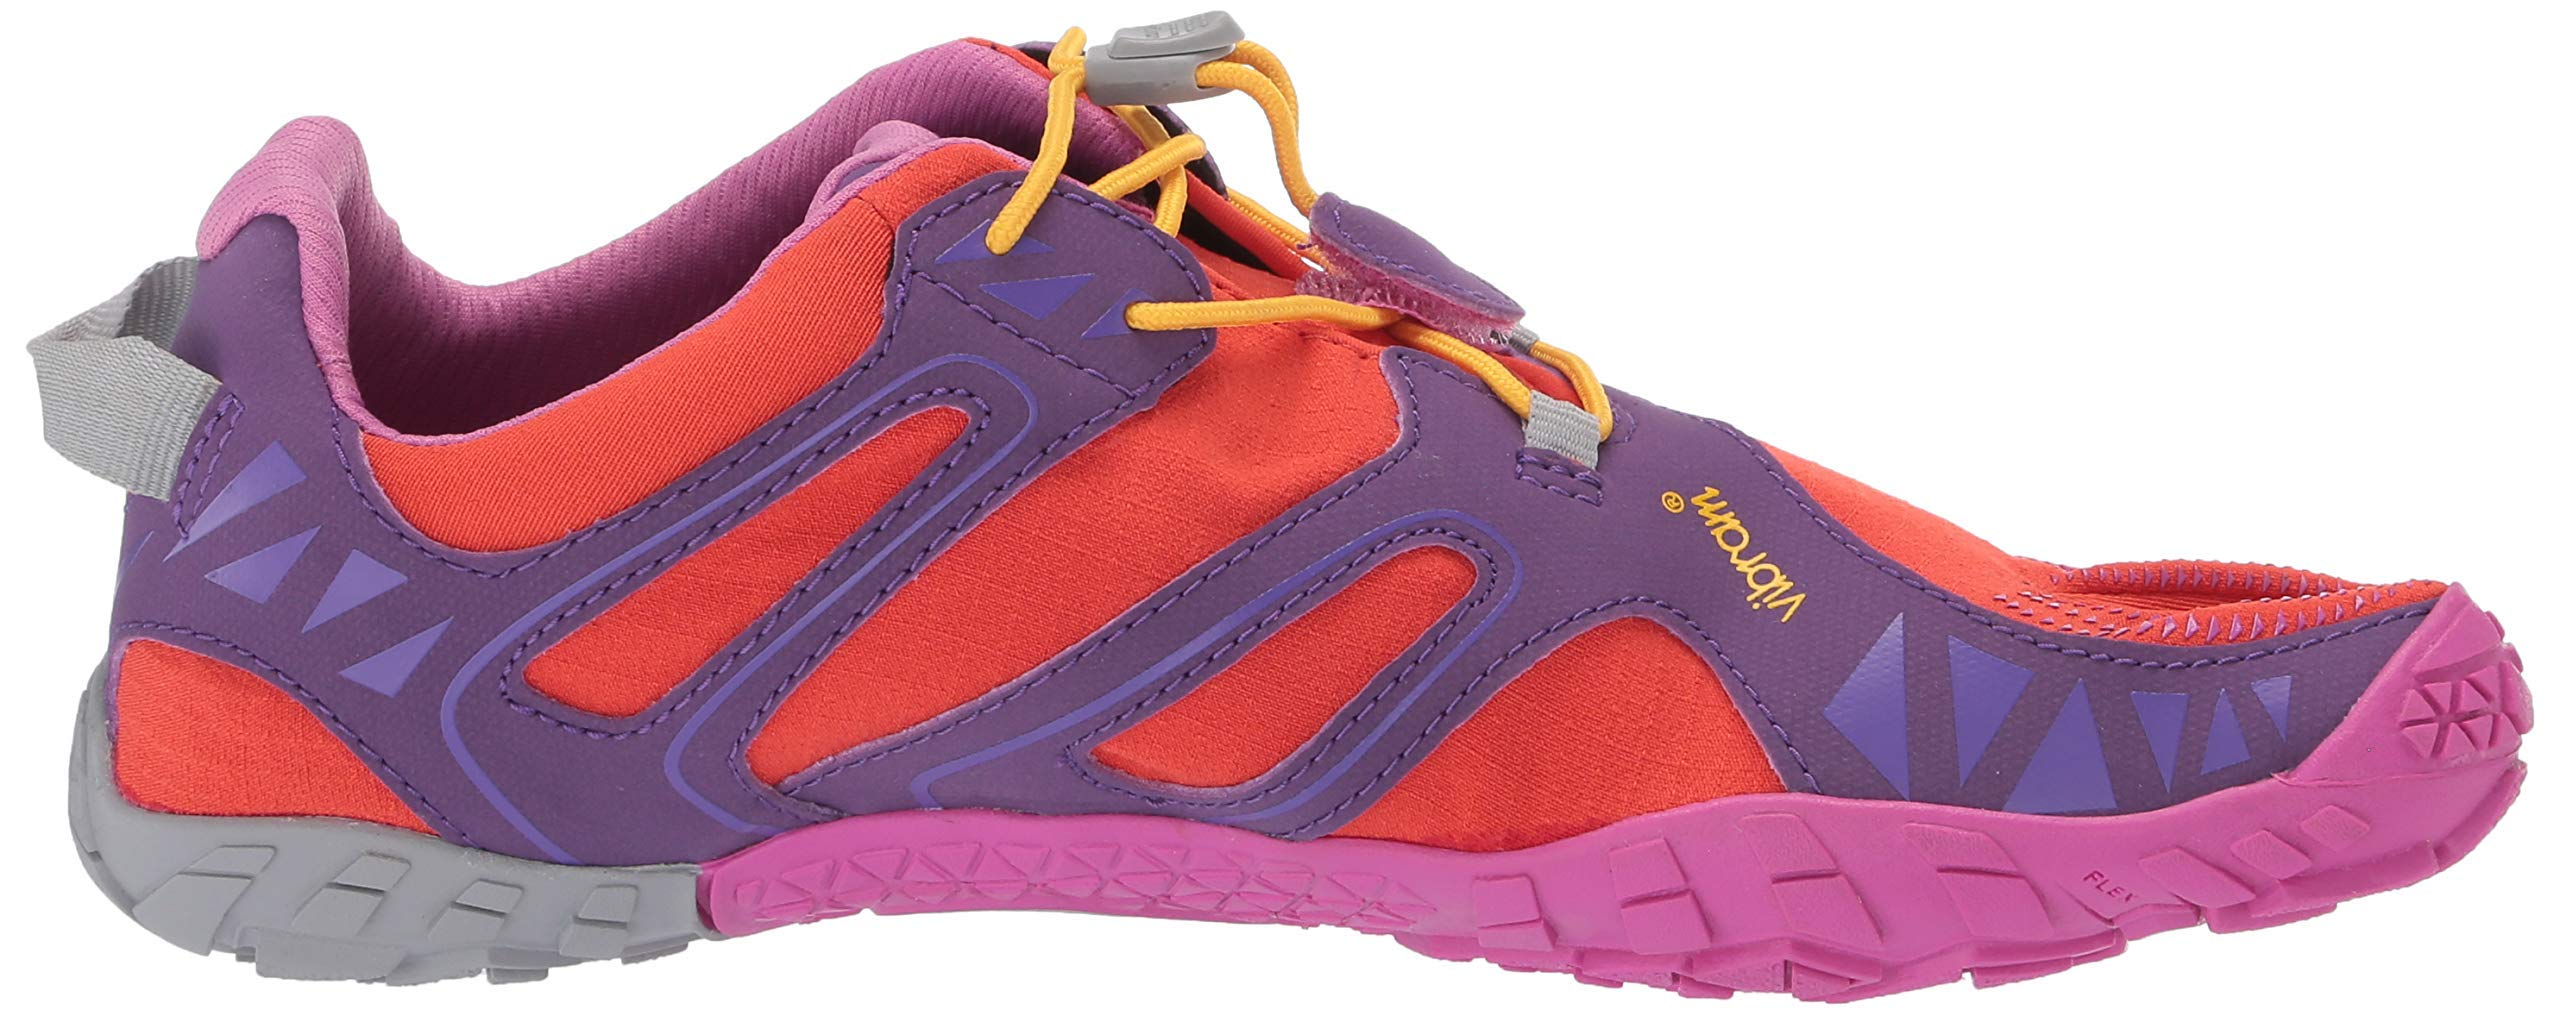 Vibram FiveFingers V-Trail, Women's Trail Running Shoes, Orange (Magenta/Orange), 6.5-7 UK (39 EU) by Vibram (Image #7)